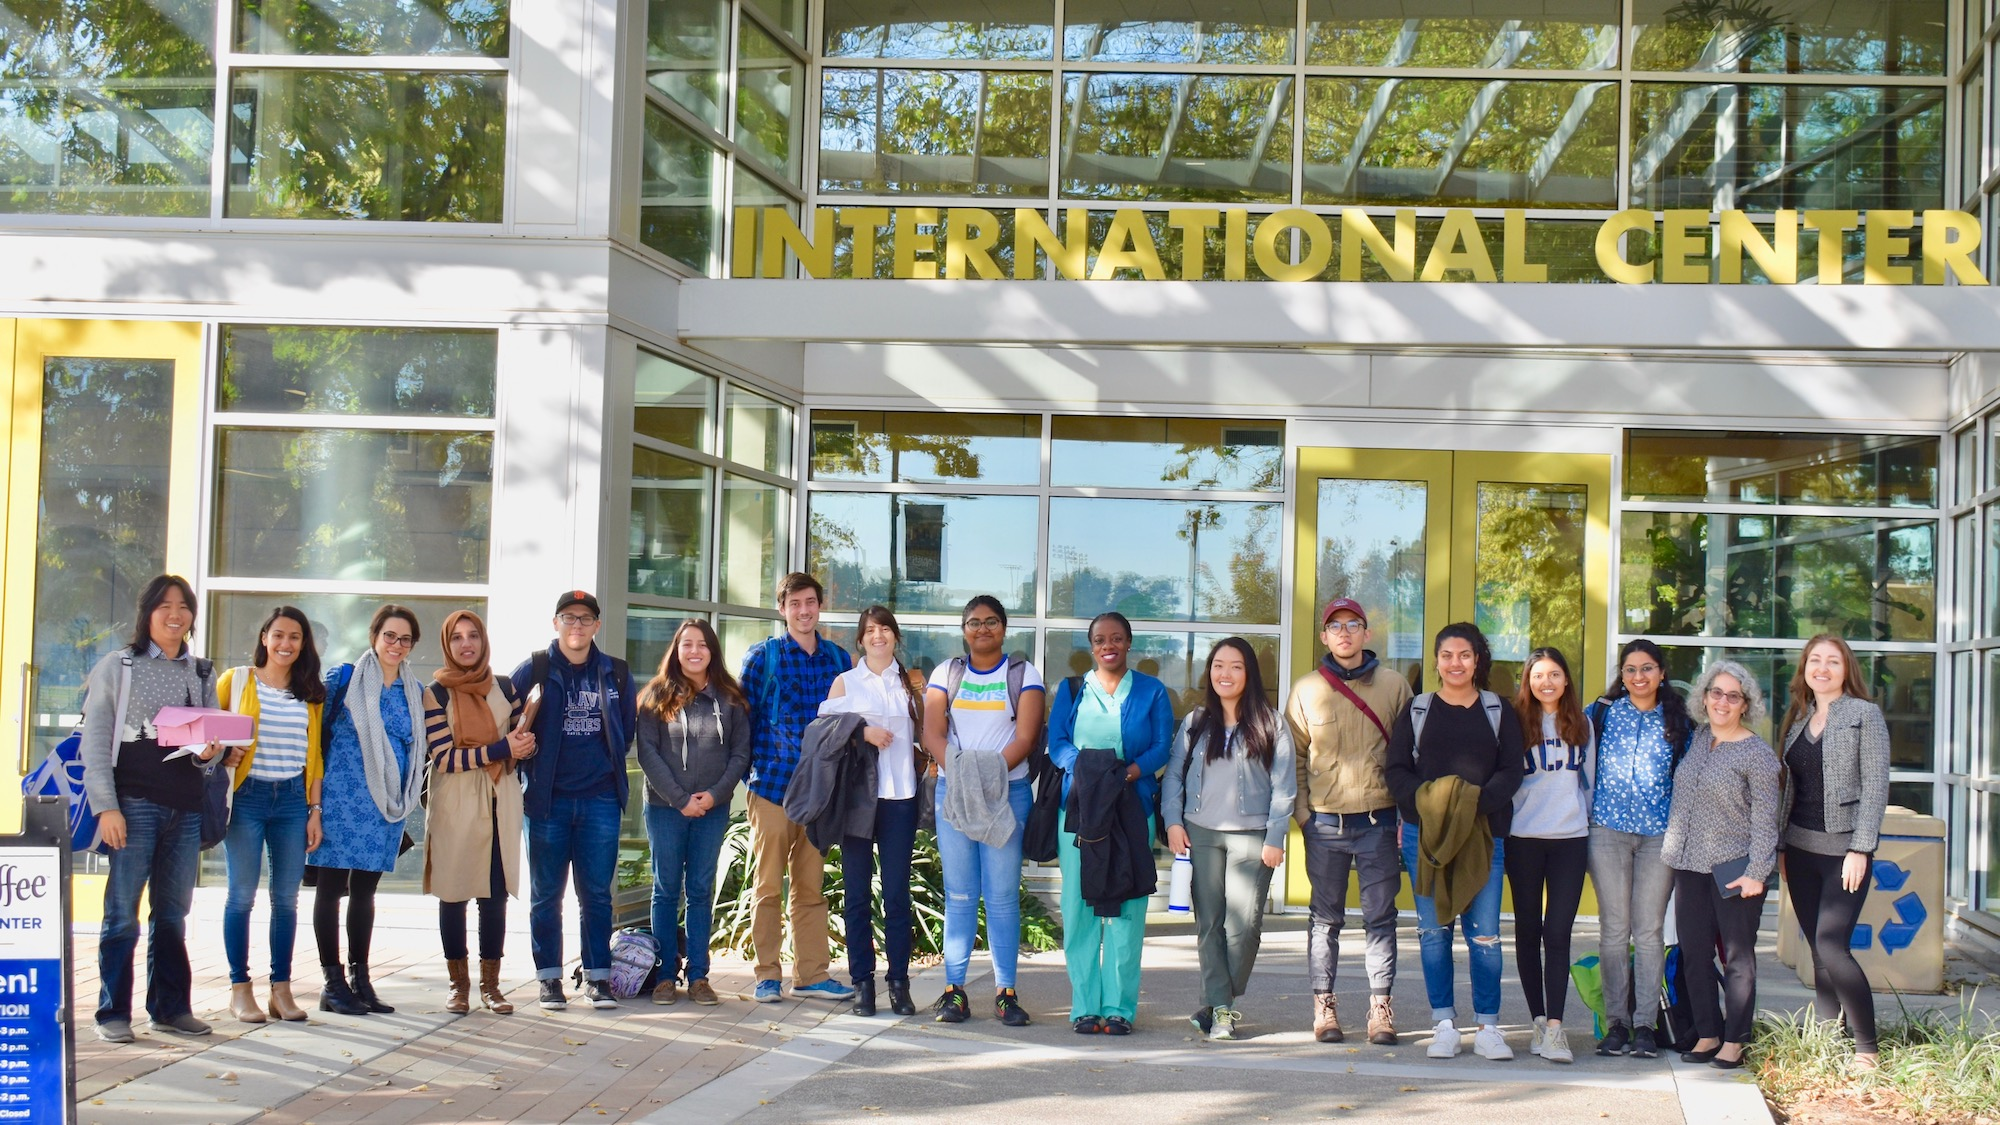 Global Education for All Fellows outside International Center